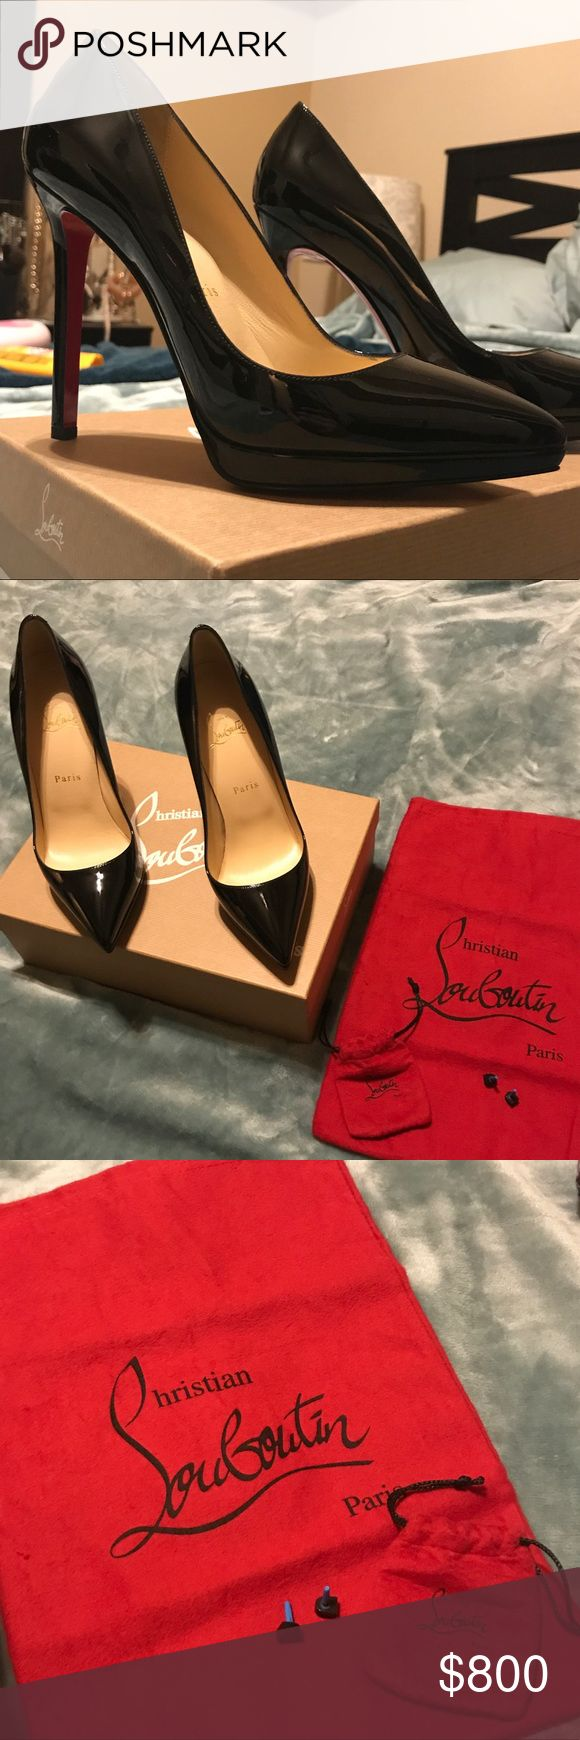 Christian Louboutin Pigalle Plato 120 Patent Calf A new pair of Christian Louboutin Pigalle Plato 120 Patent Calf Black pumps with duster and original heel replacements. Christian Louboutin Shoes Heels